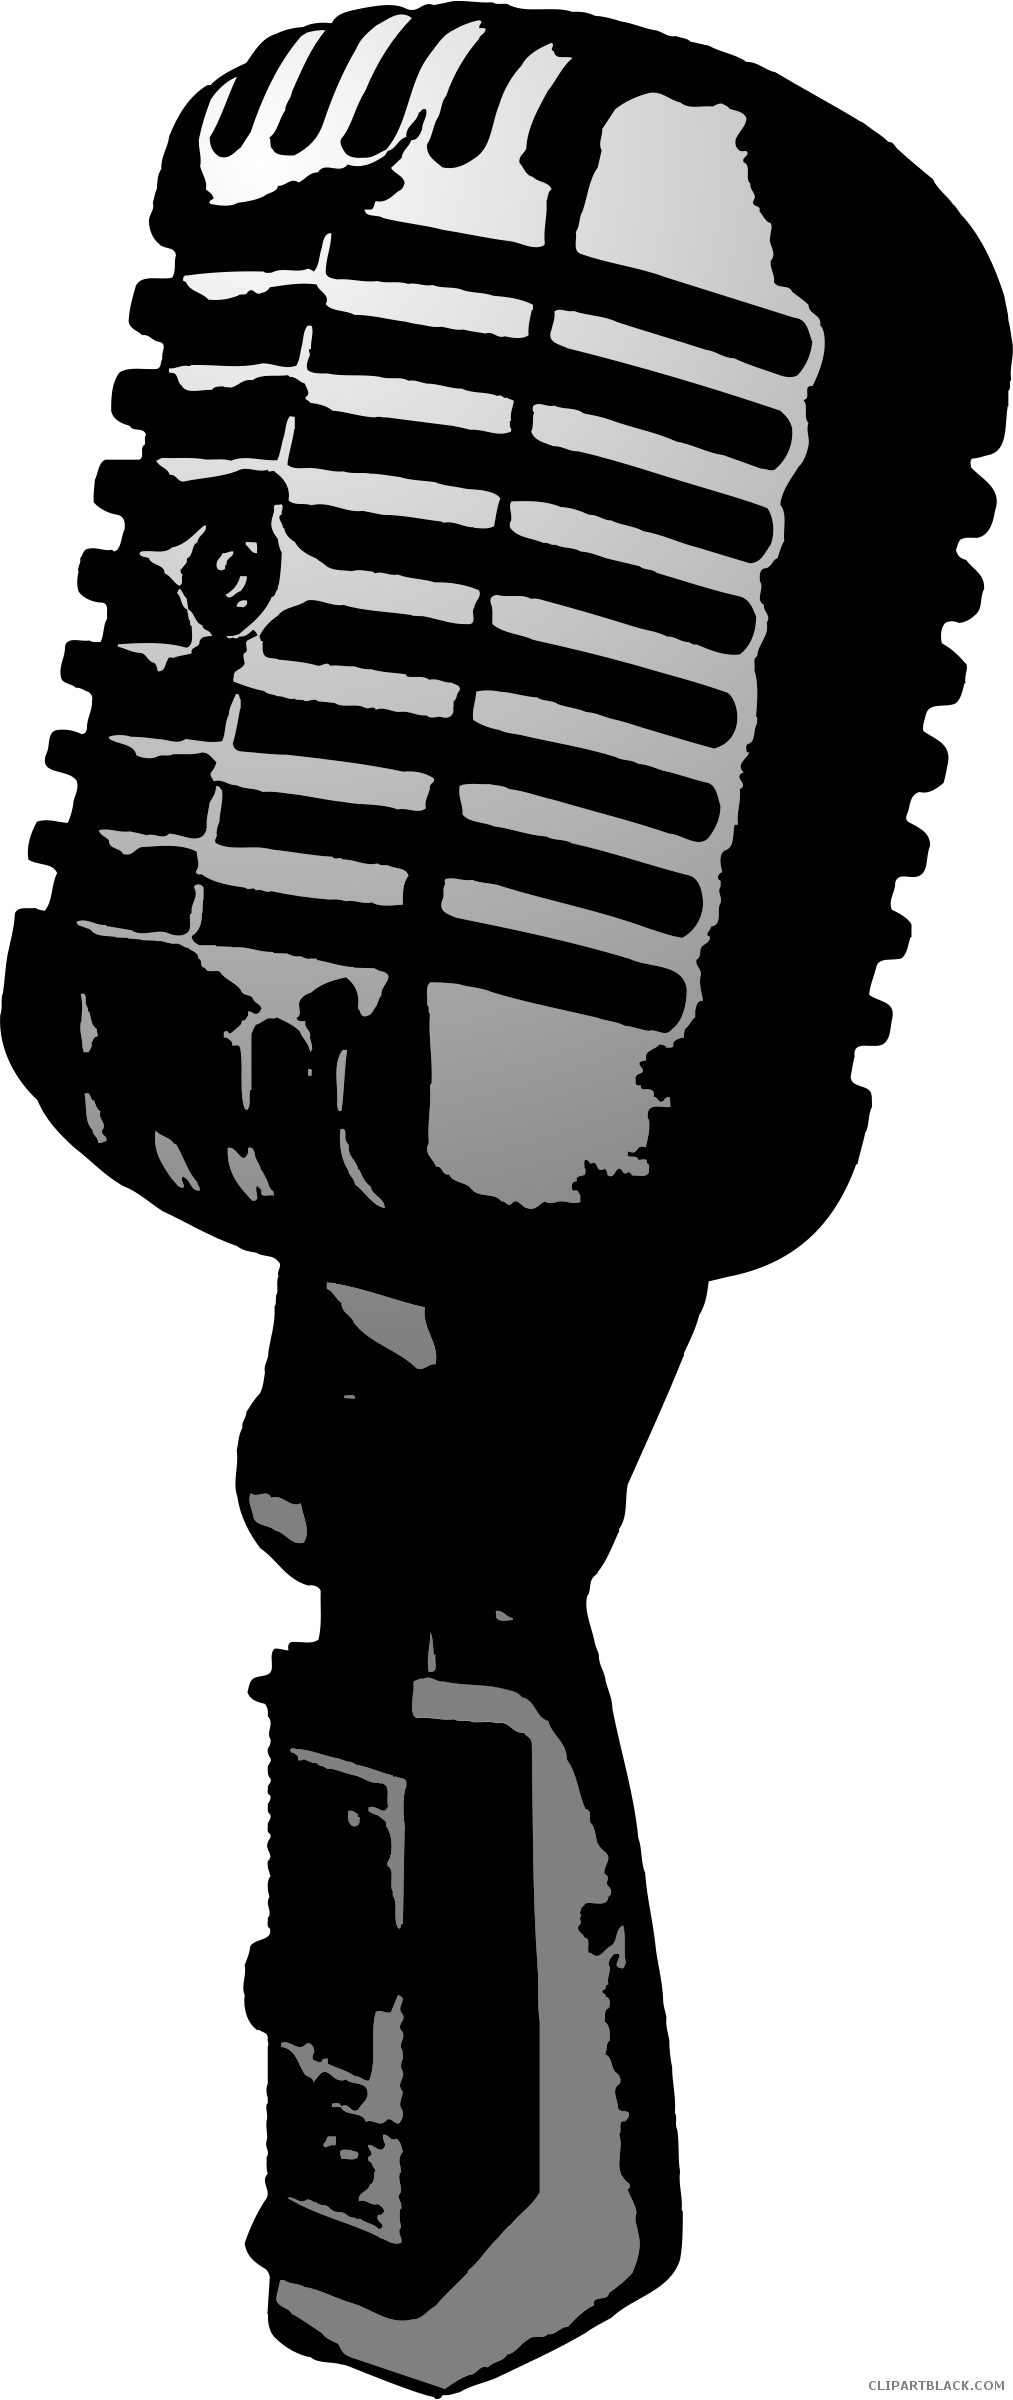 Microphone clipart old style. Fashioned time clipartblack com